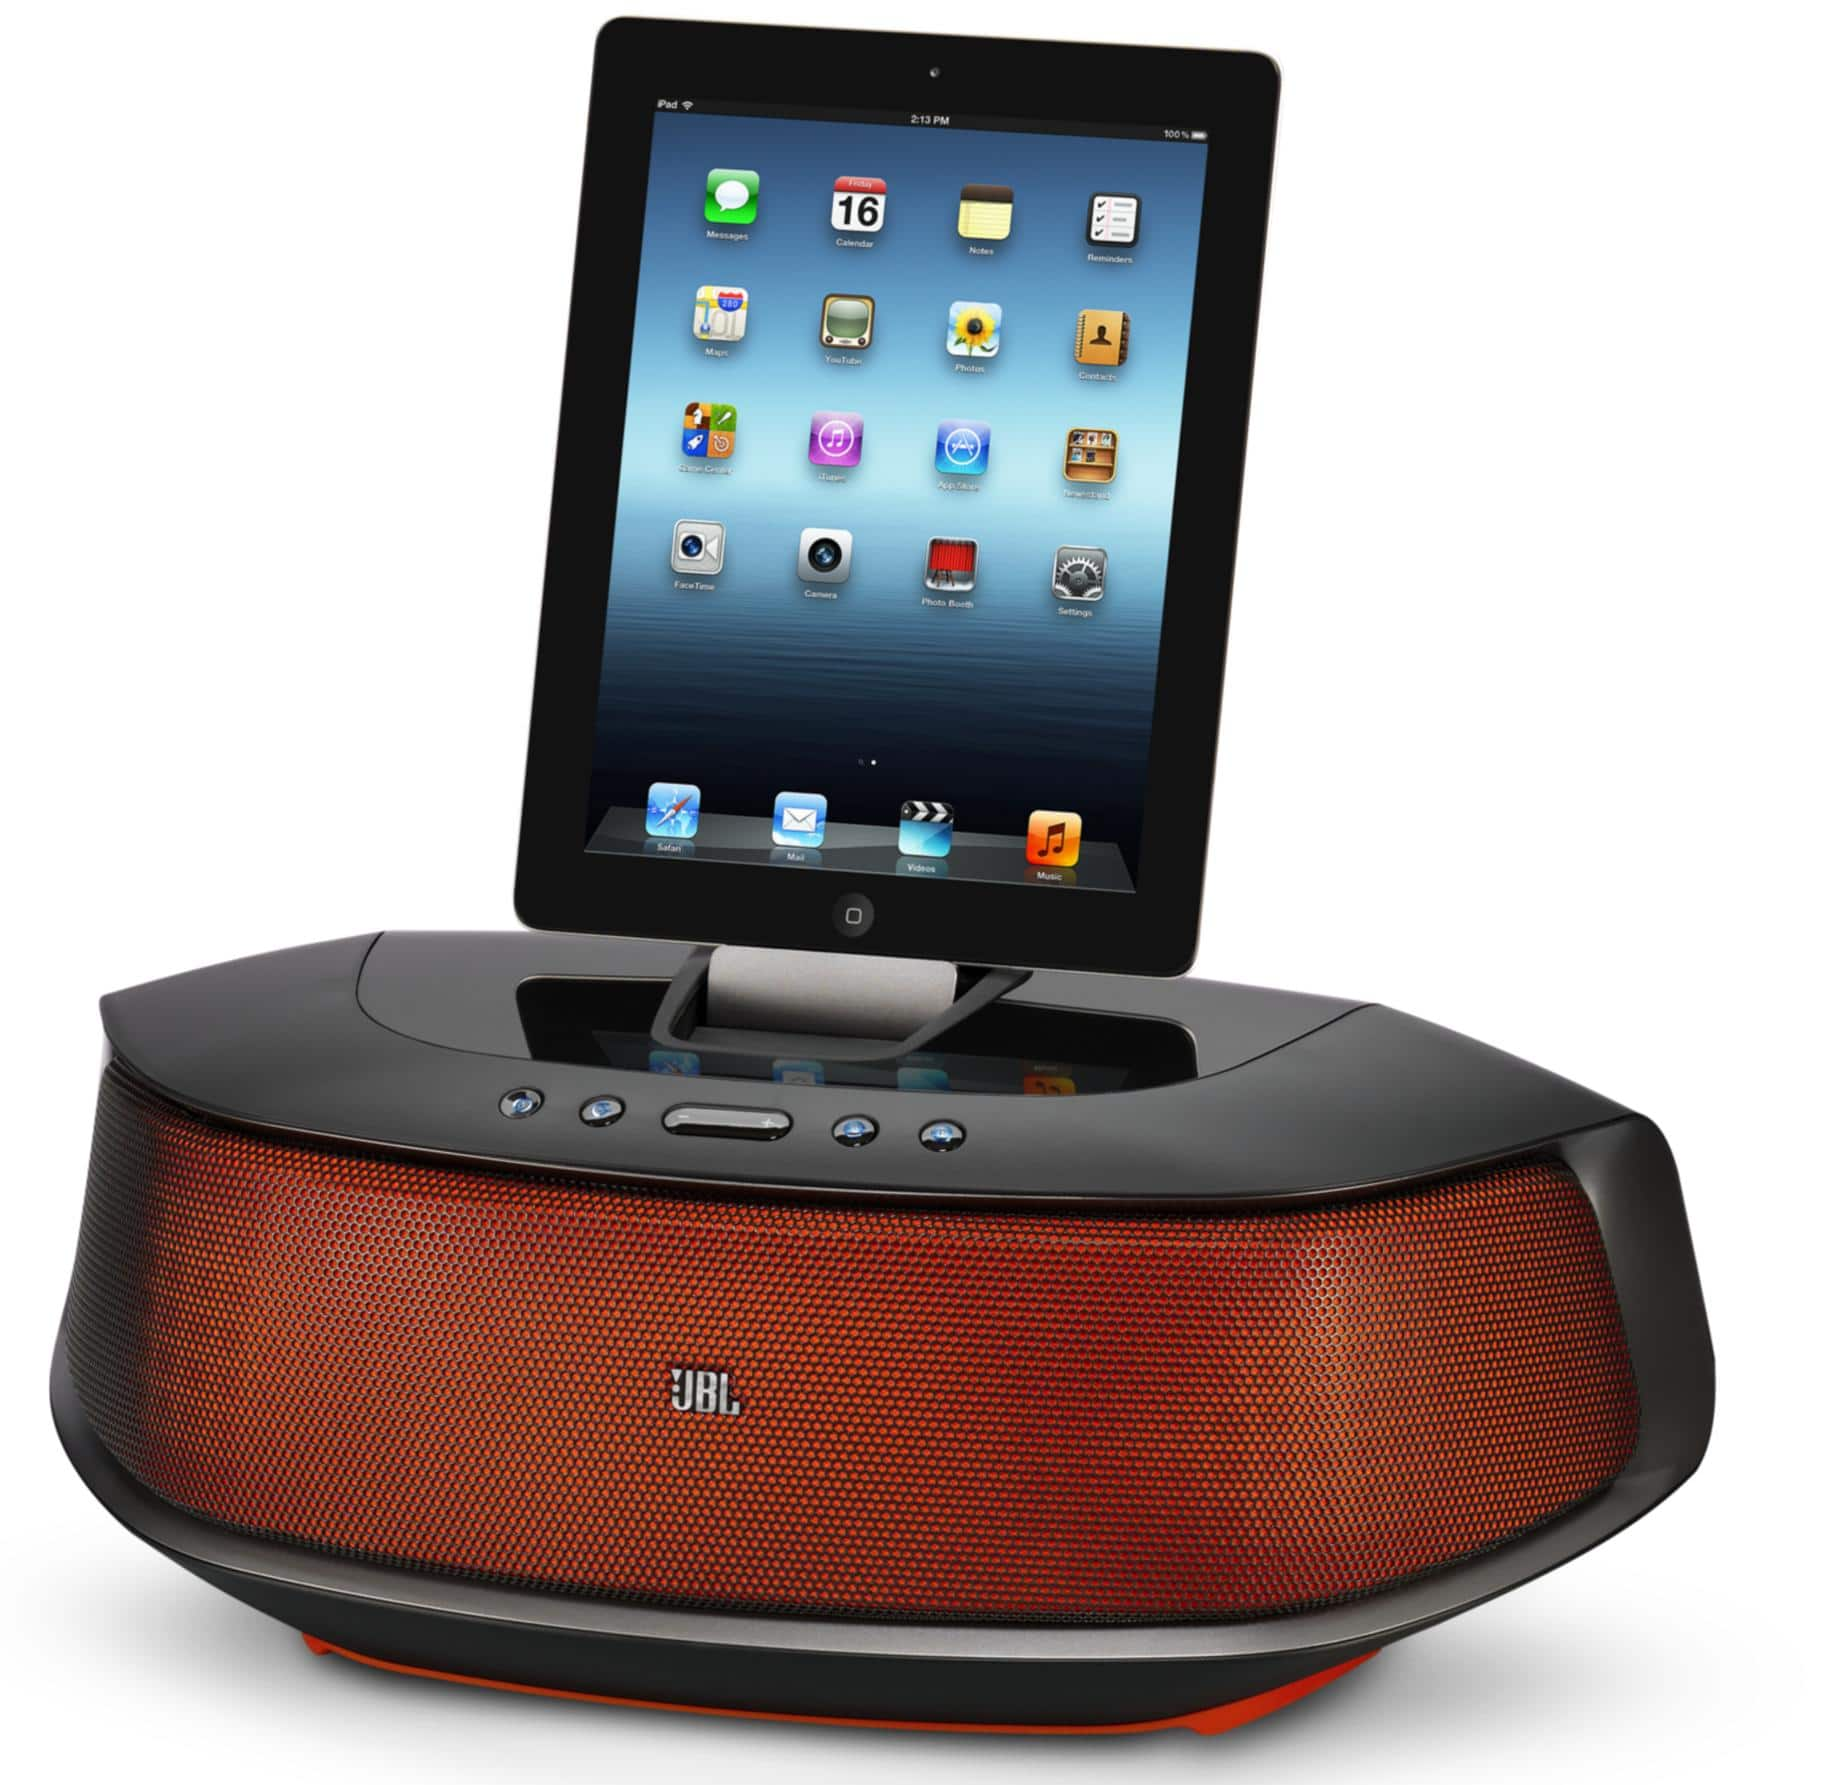 JBL OnBeat Rumble, Powerful Bluetooth Speaker Dock with Lightening Connector $125 + Free Shipping!